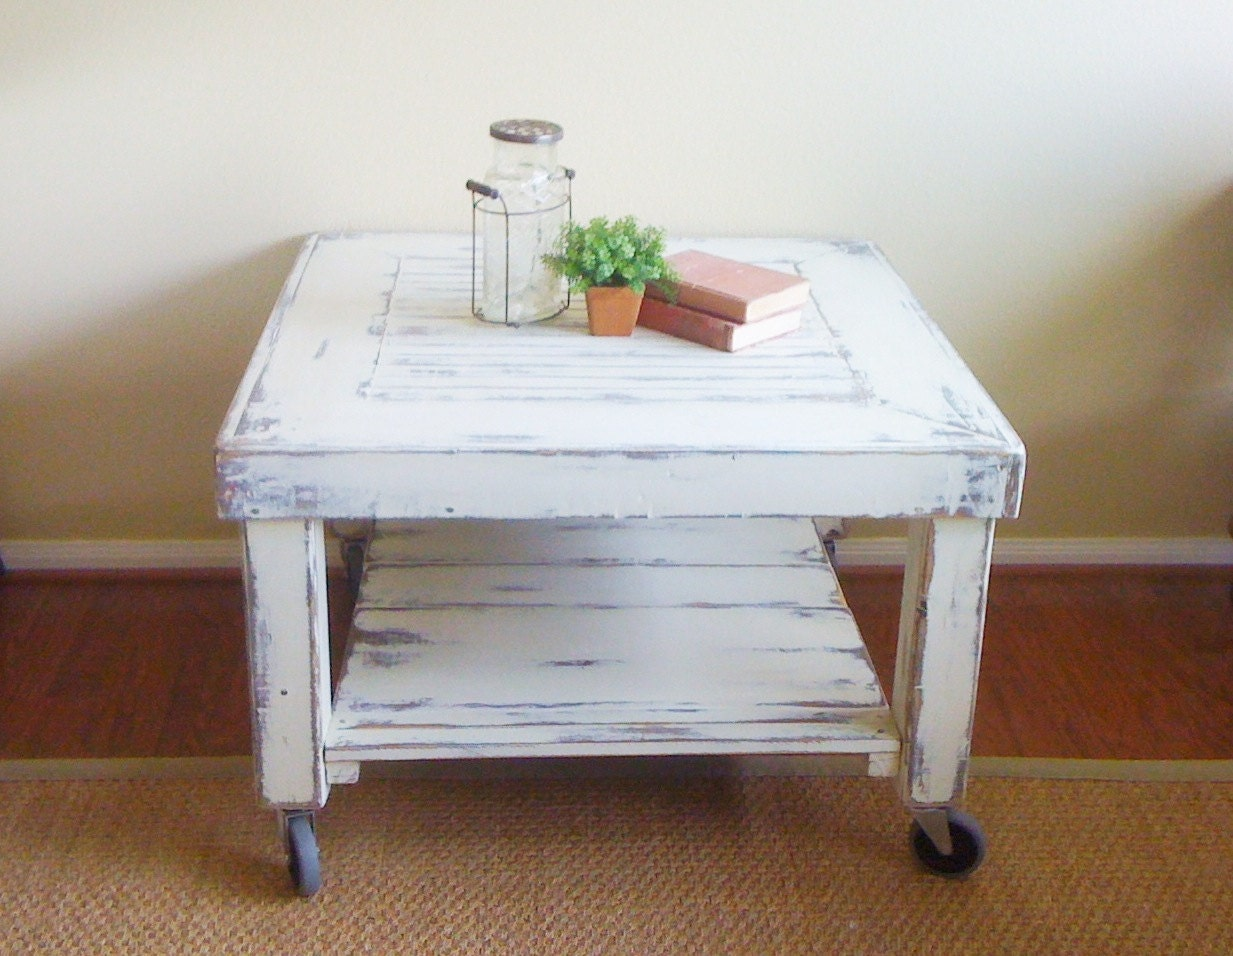 In My Bucket Industrial Shabby Chic Coffee Table On Casters